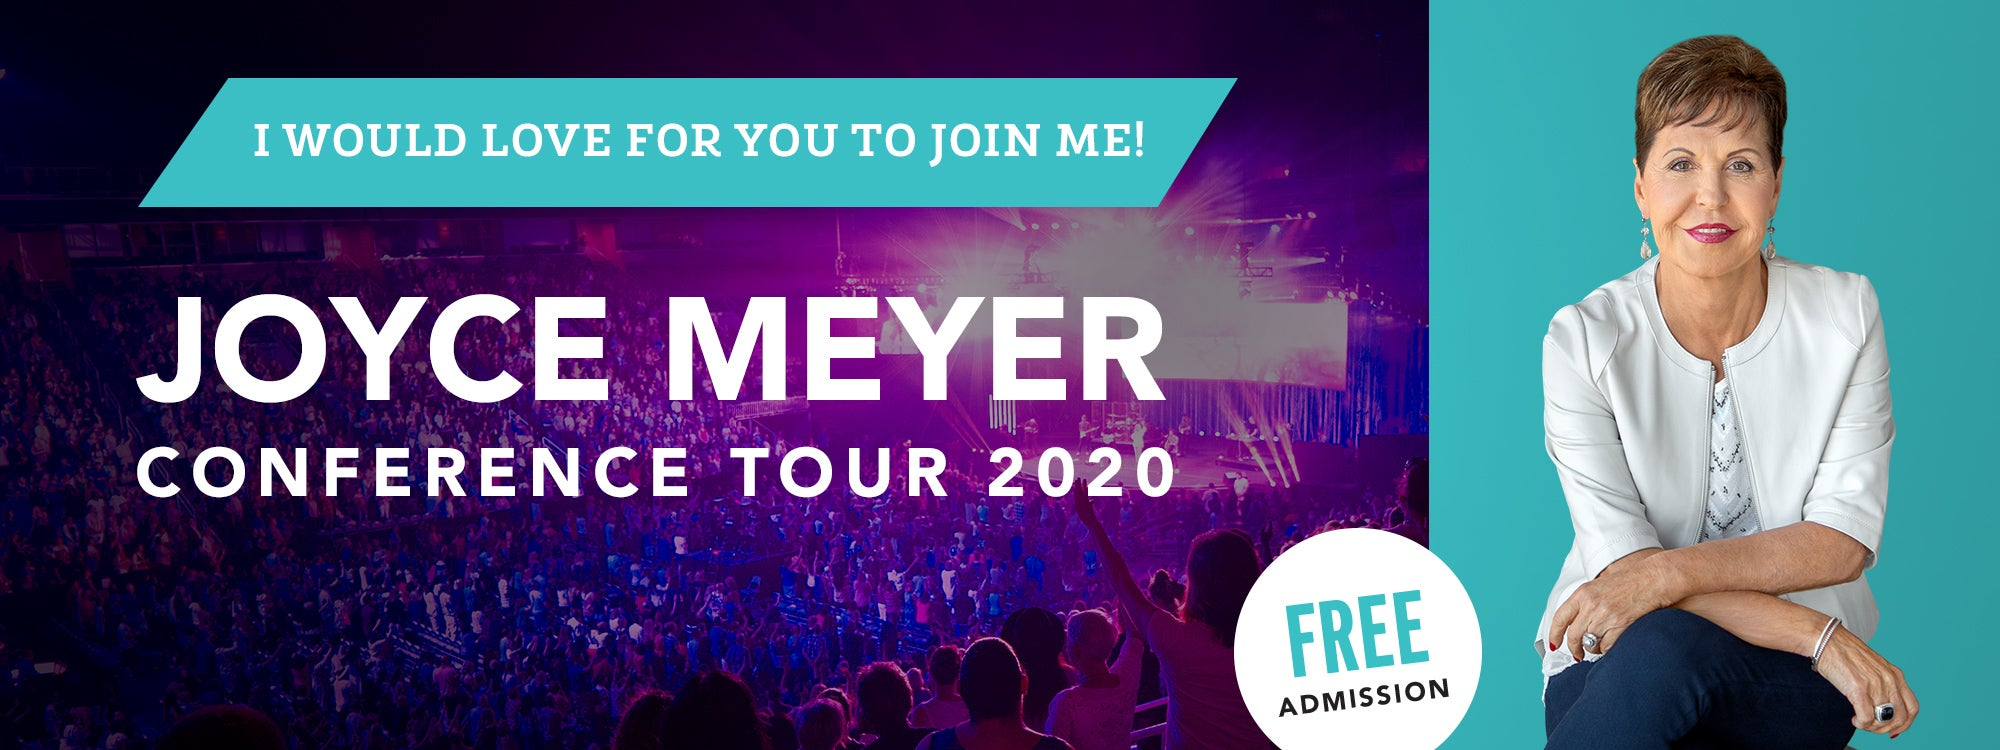 Joyce Meyer Conference Tour 2020